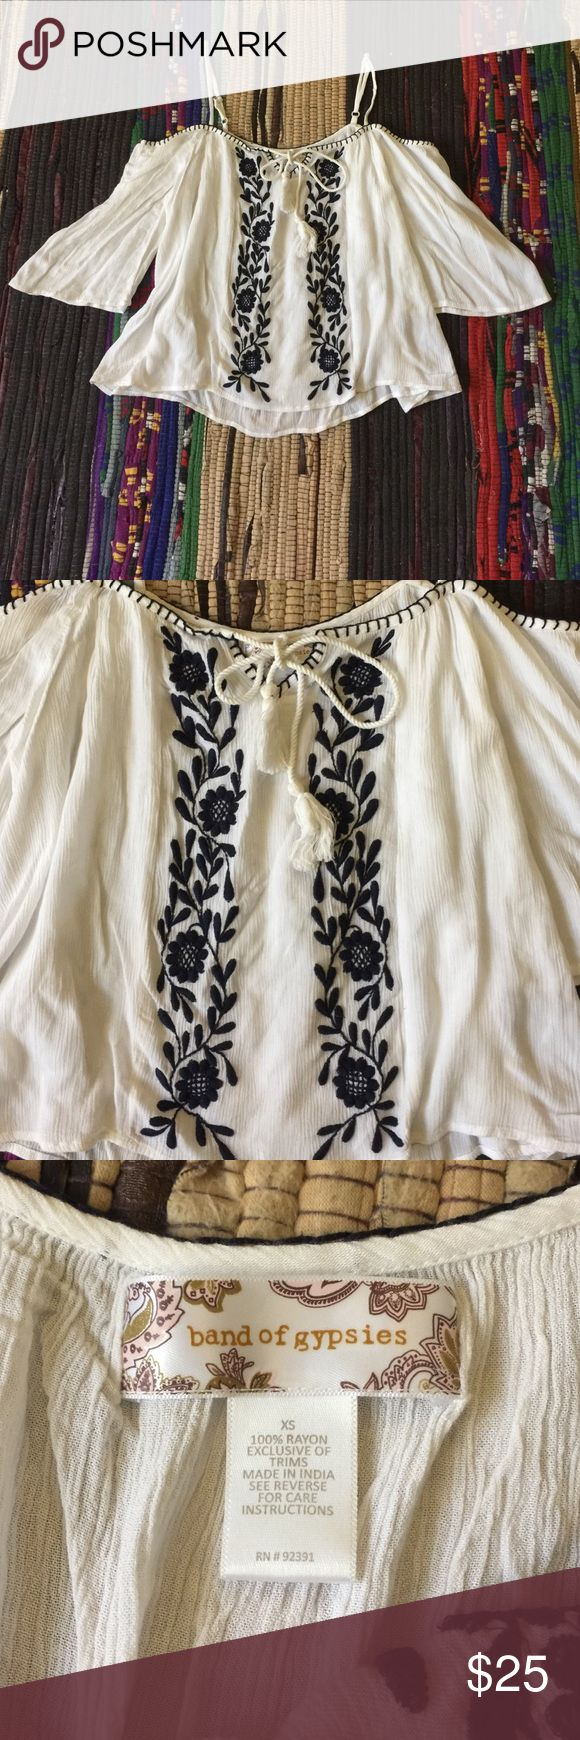 Band of Gypsies cold shoulder crop top Boho cold shoulder crop top by Band of Gypsies. This will be your new favorite shirt. The cutest top to pair with high waisted denim and booties to instantly look boho chic. Soft white gauzy material with navy embroidery down the front. Tie in front with tassels. Adjustable spaghetti straps. Size XS. Worn once. Urban Outfitters Tops Crop Tops